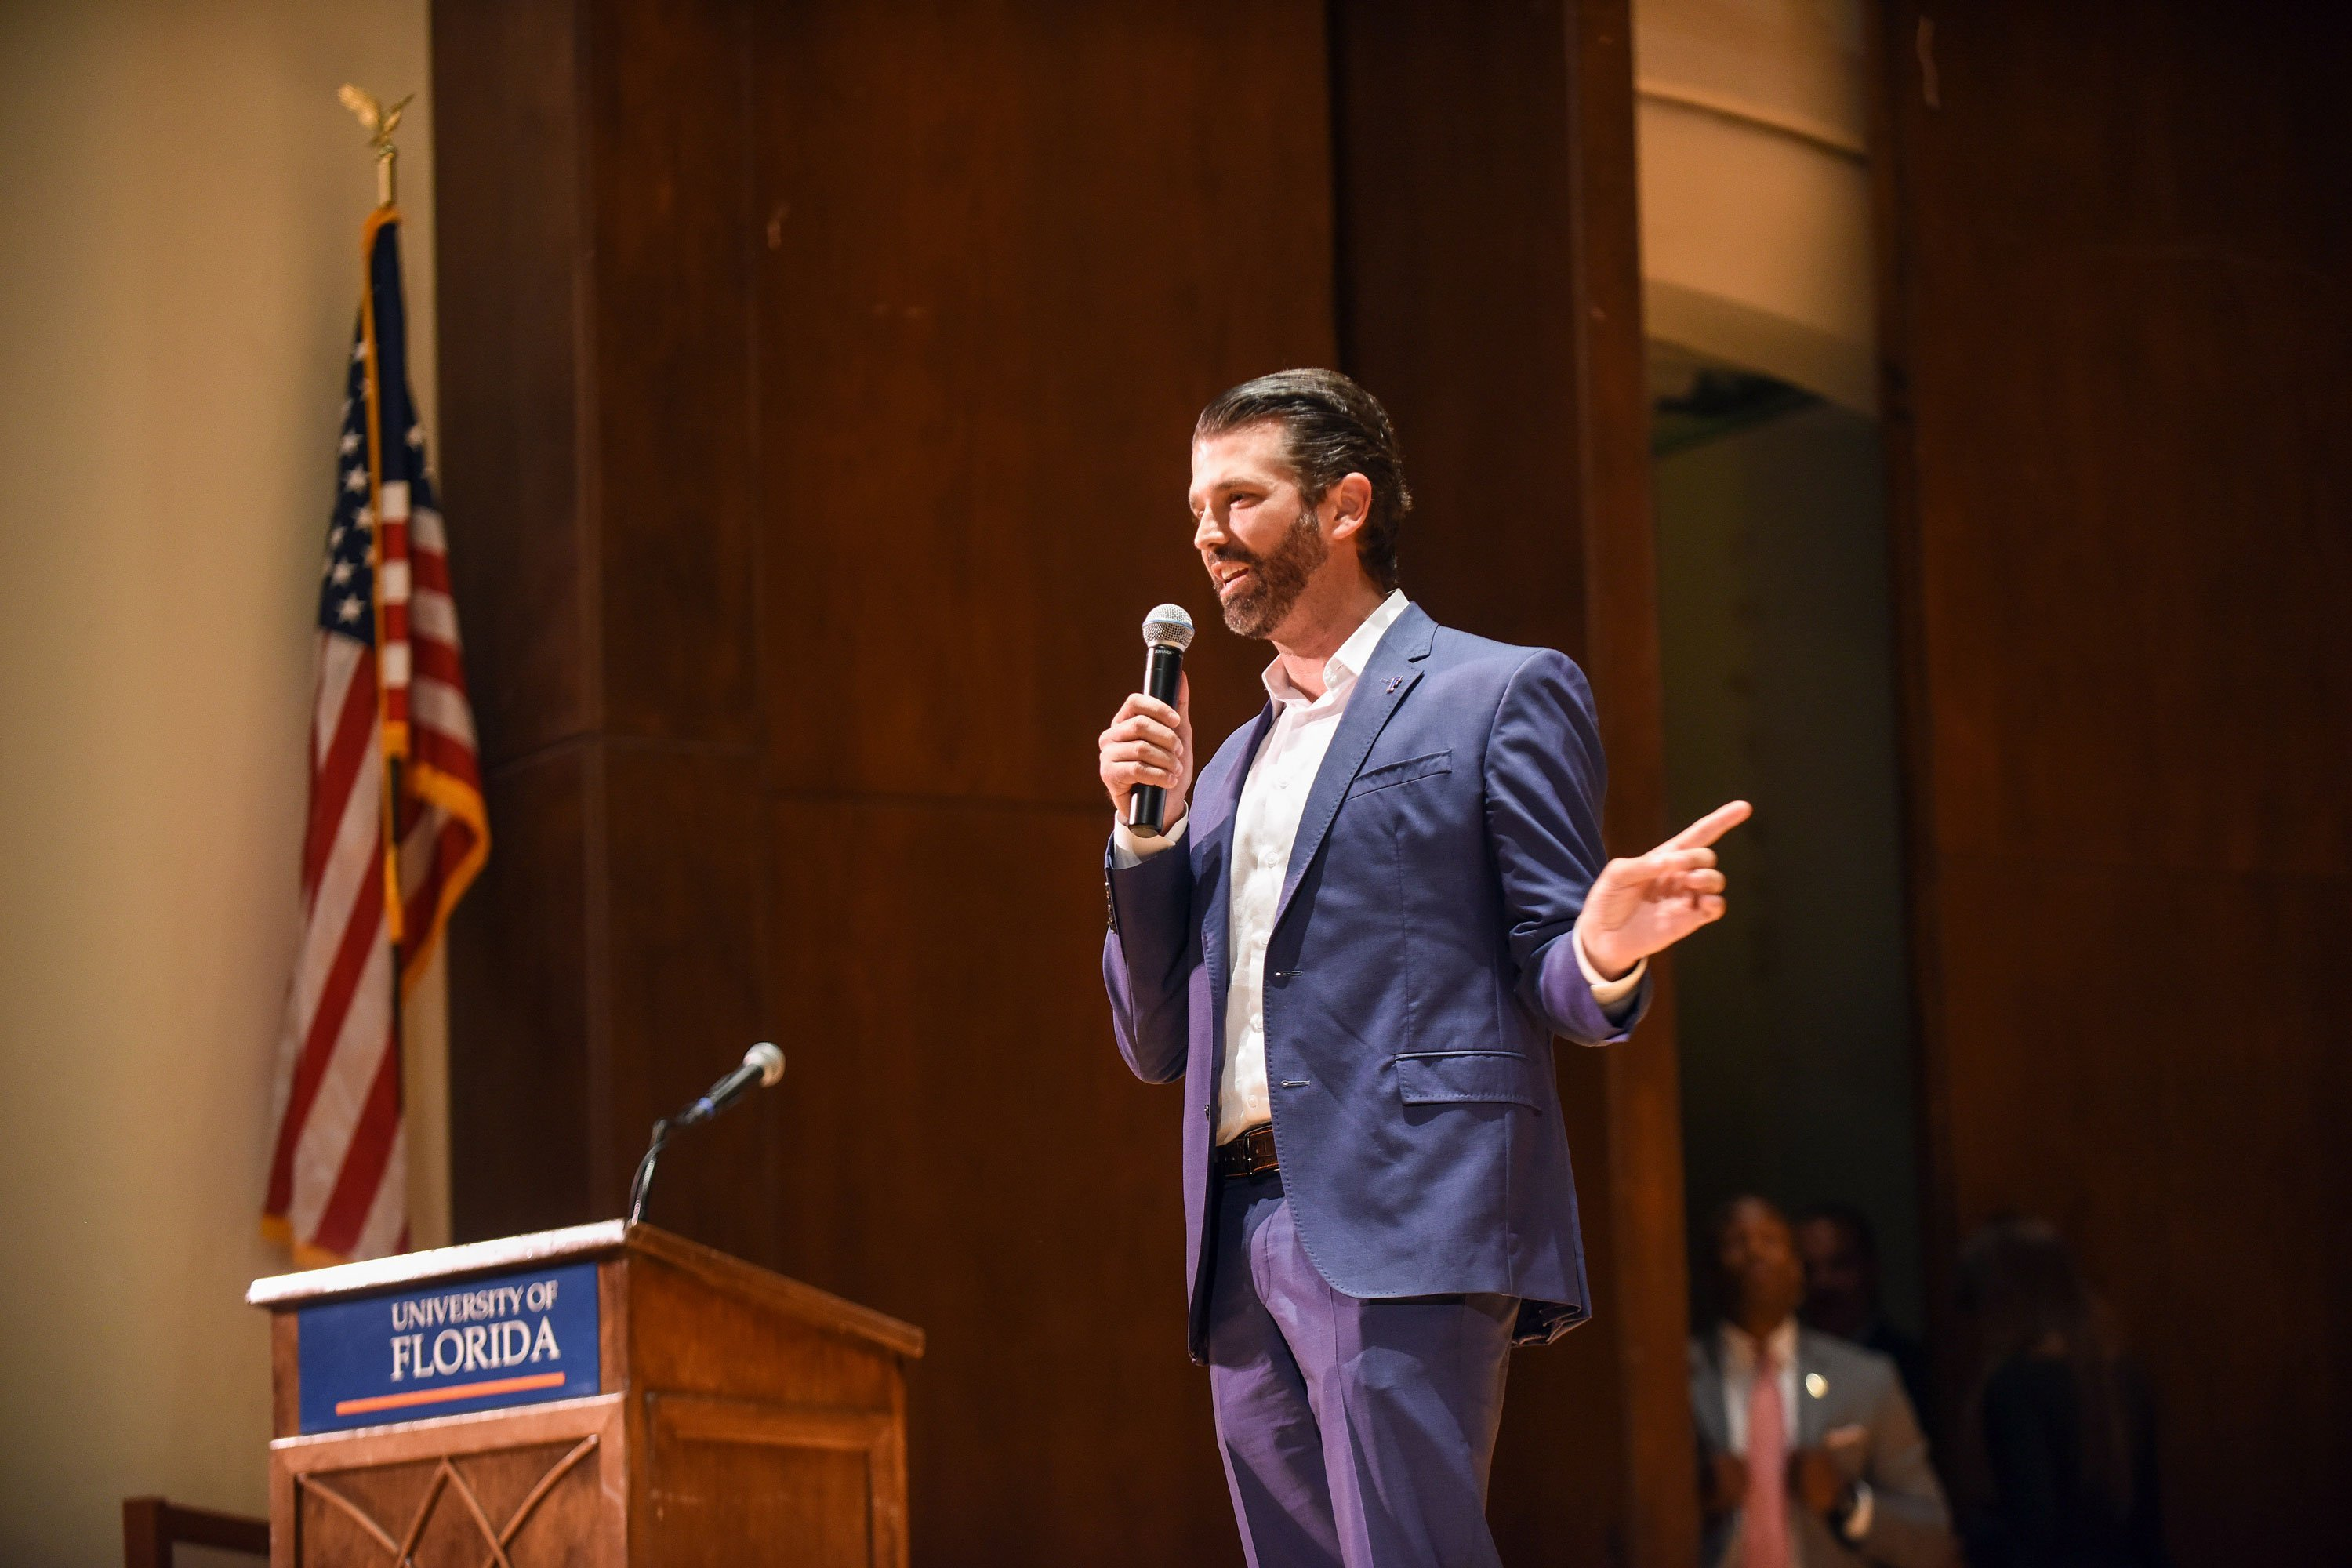 University of Florida student president is being impeached over a Donald Trump Jr. speech